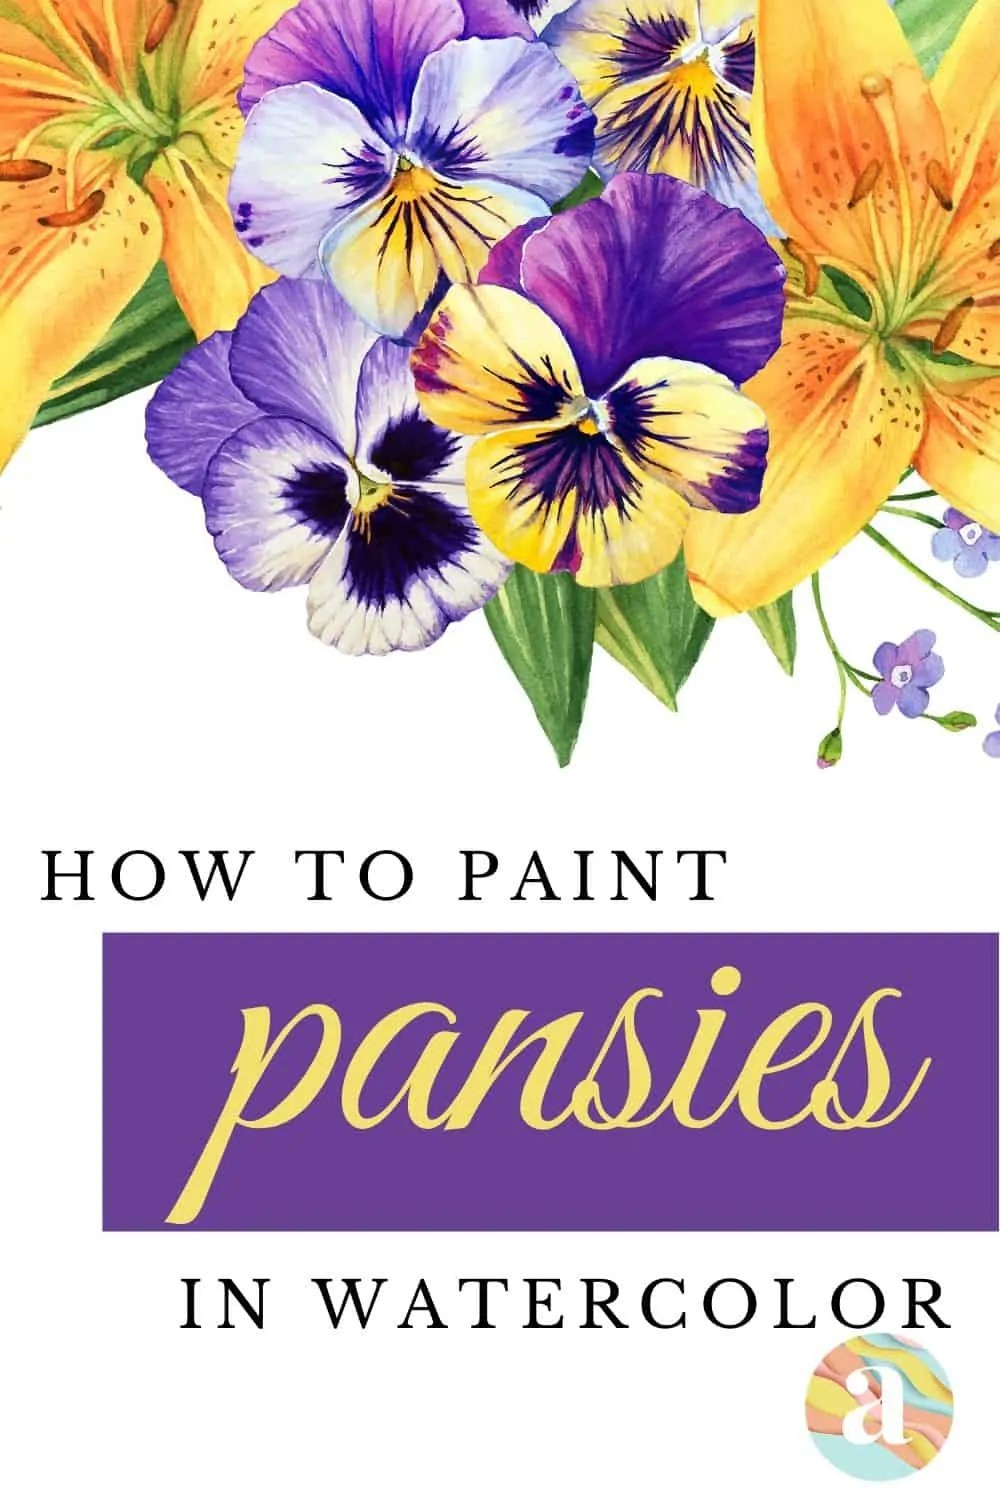 How to paint pansies in watercolor